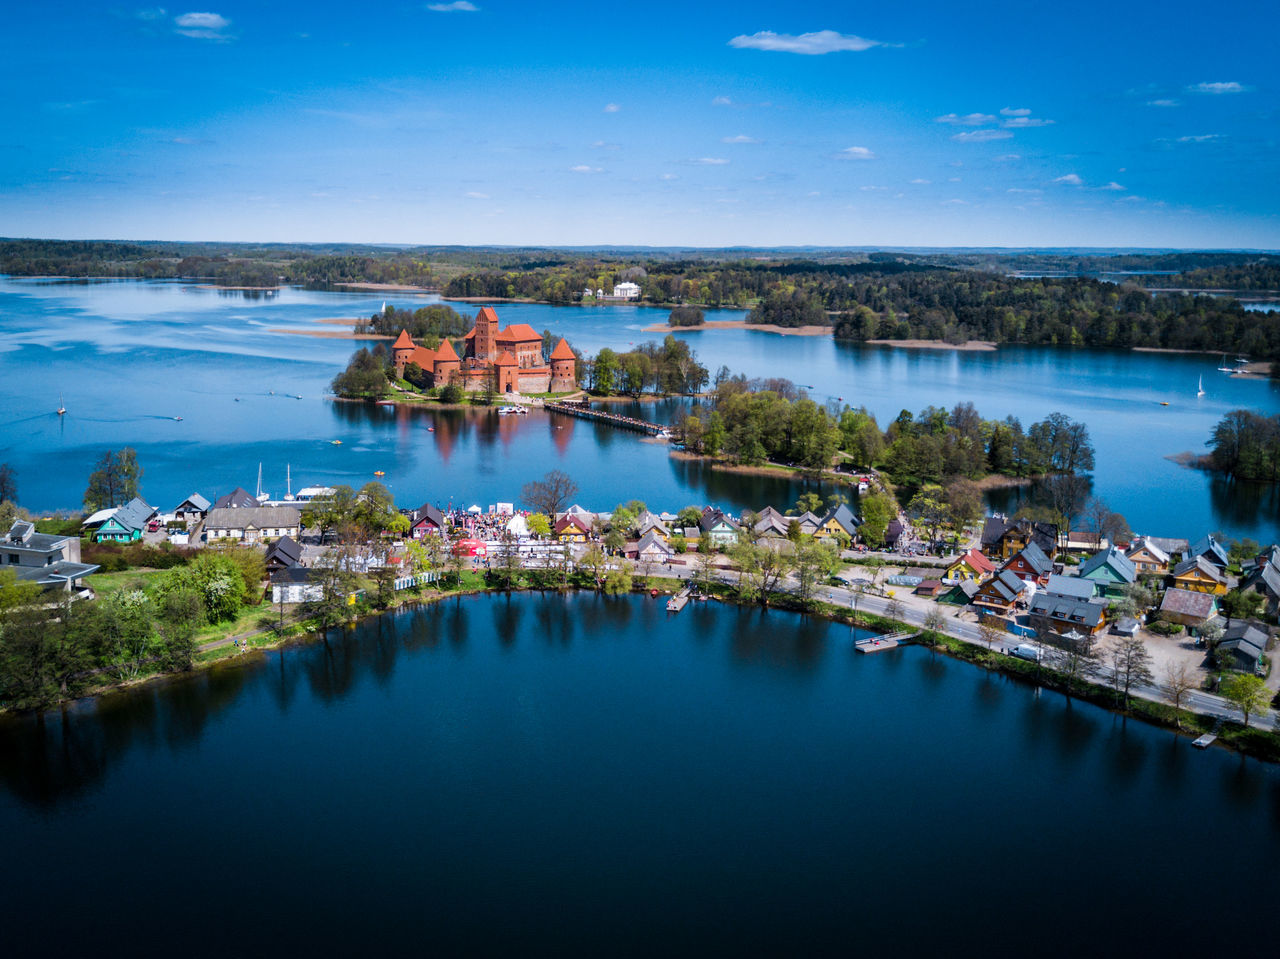 Trakai castle in Lithuania - tourist attraction in Lithuania Architecture Attraction Beauty In Nature Built Structure DJI Mavic Pro Drone  High Angle View History Lake Lithuania Mavicpro Medieval Nautical Vessel Old Reflection Scenics Sightseeing Tourism Trakai Trakai Castle Trakai Island Castle Tranquil Scene Tranquility Village Water Neighborhood Map